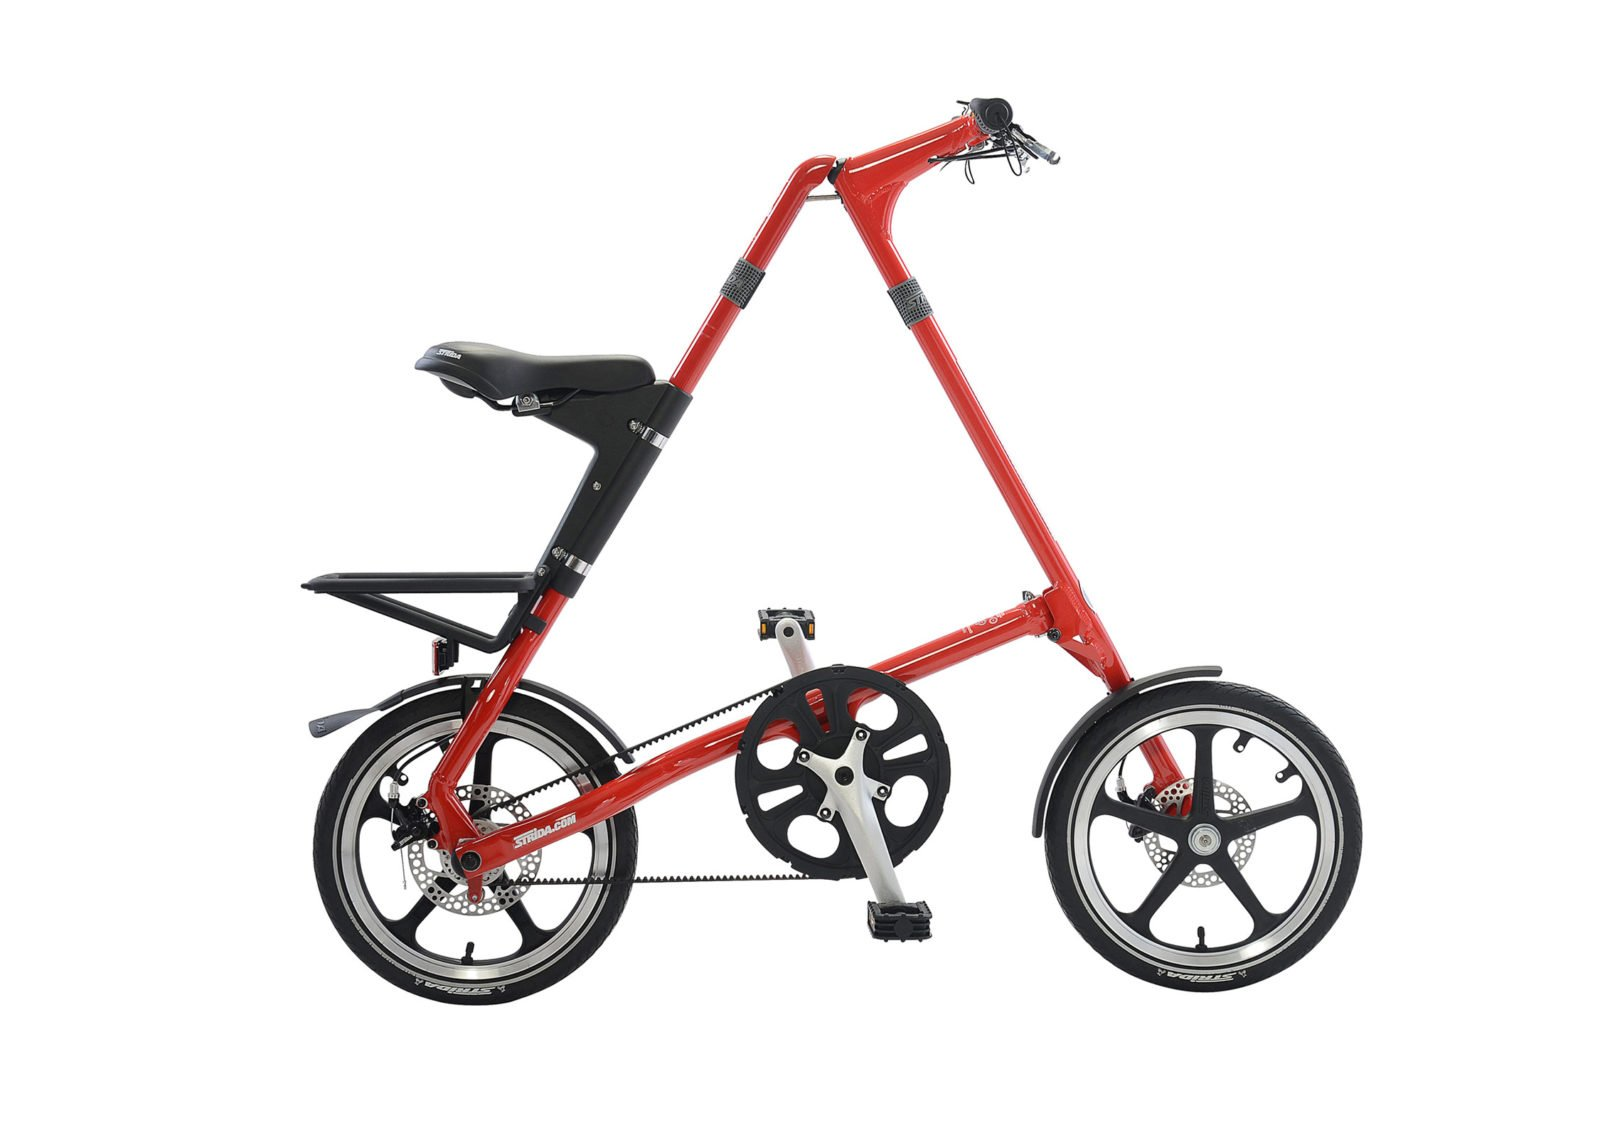 STRiDA LT Folding Bicycle, Red-31734